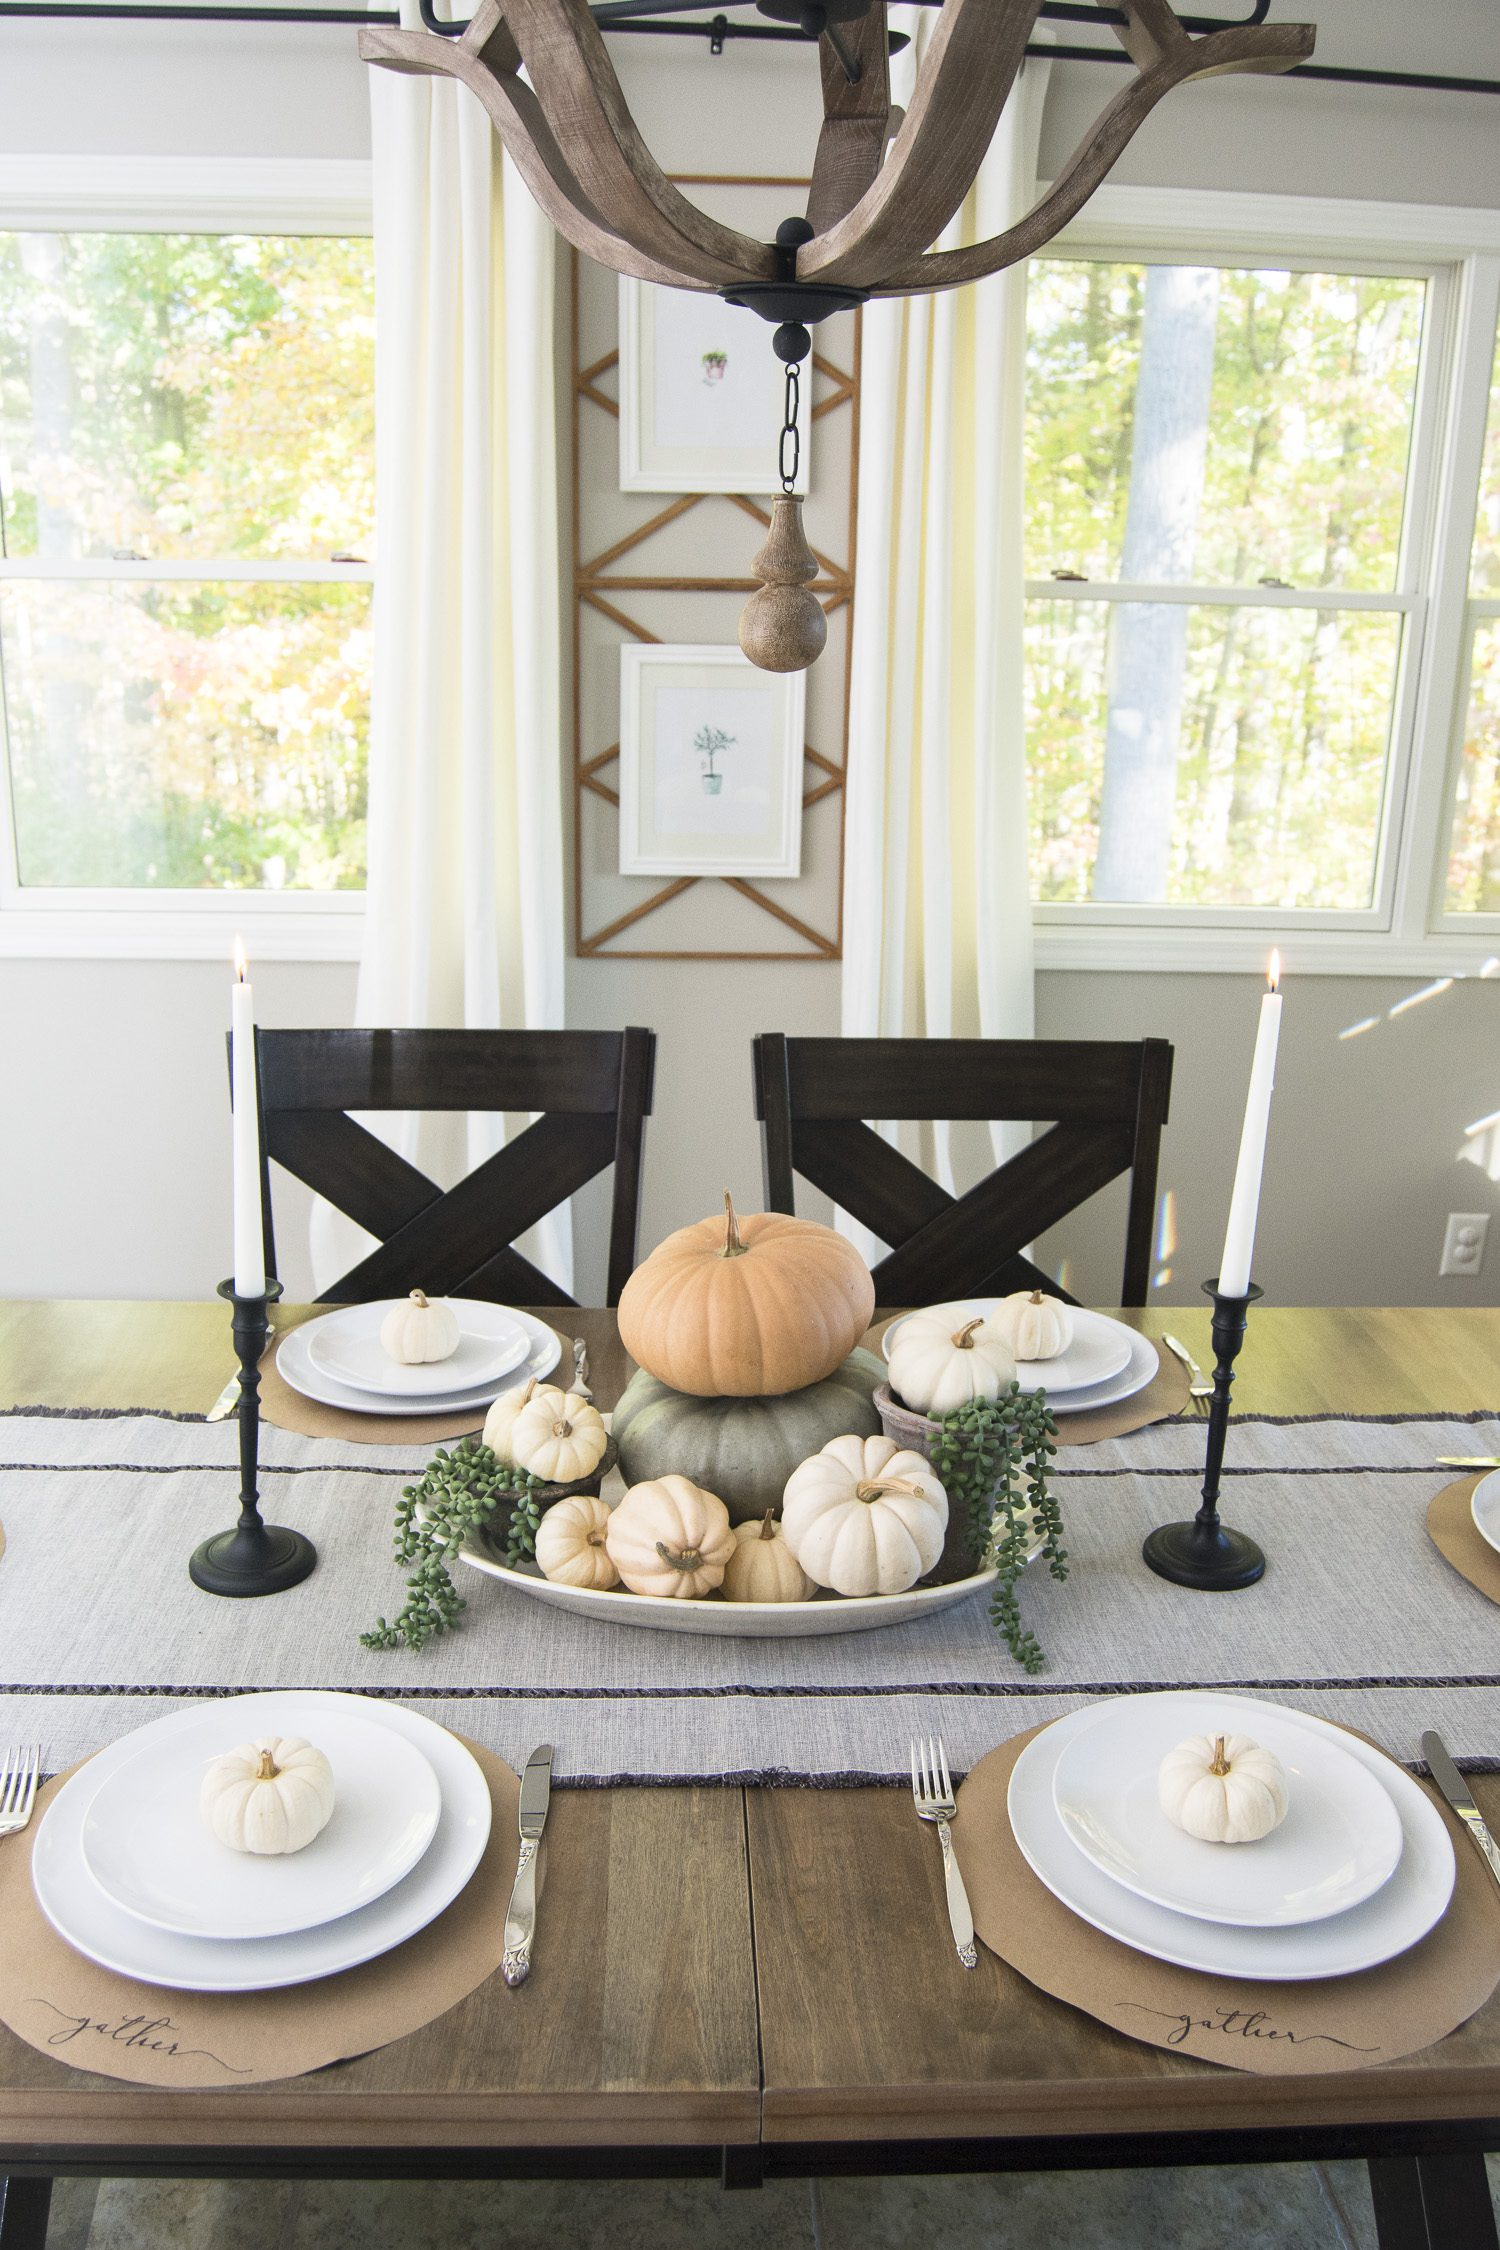 Are you looking for a simple way to decorate your thanksgiving table? I've put together three easy options to dress up your thanksgiving tablescape.